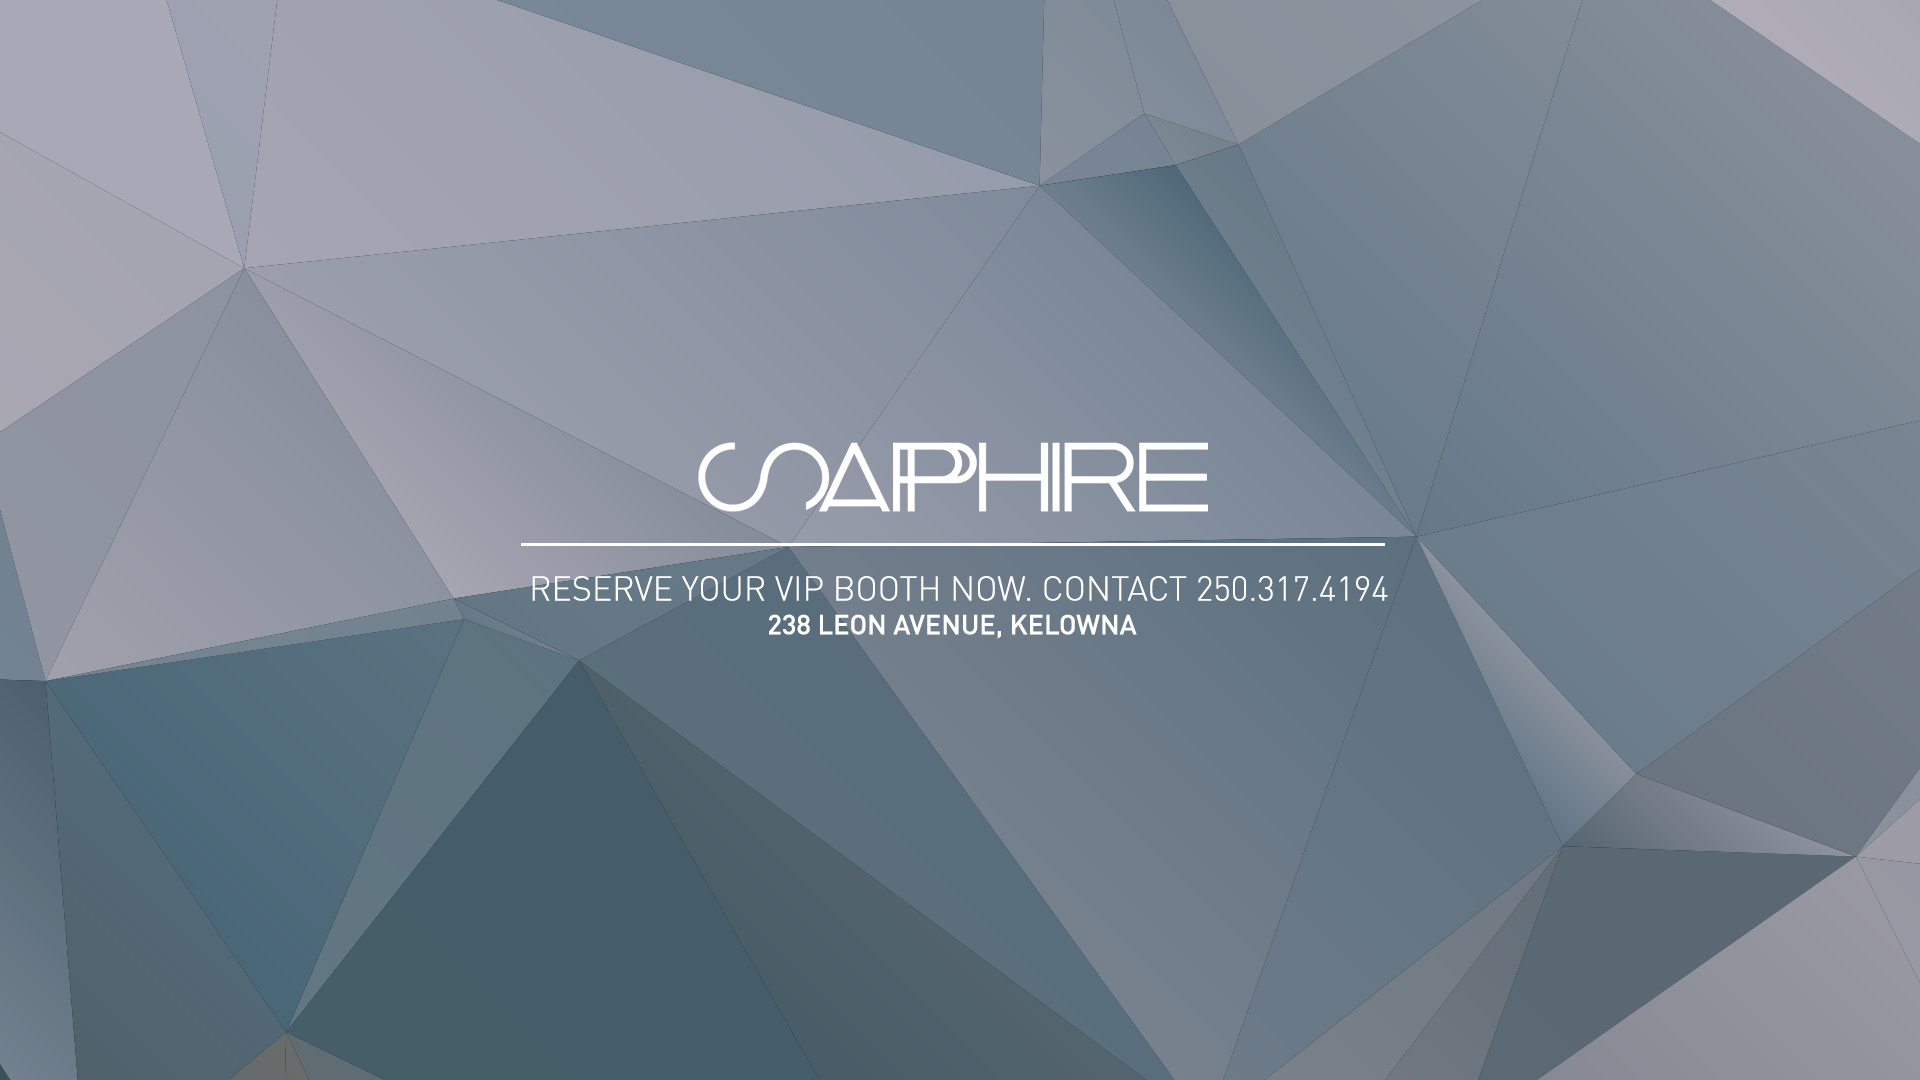 Sapphire kelowna the hottest venue in town malvernweather Choice Image